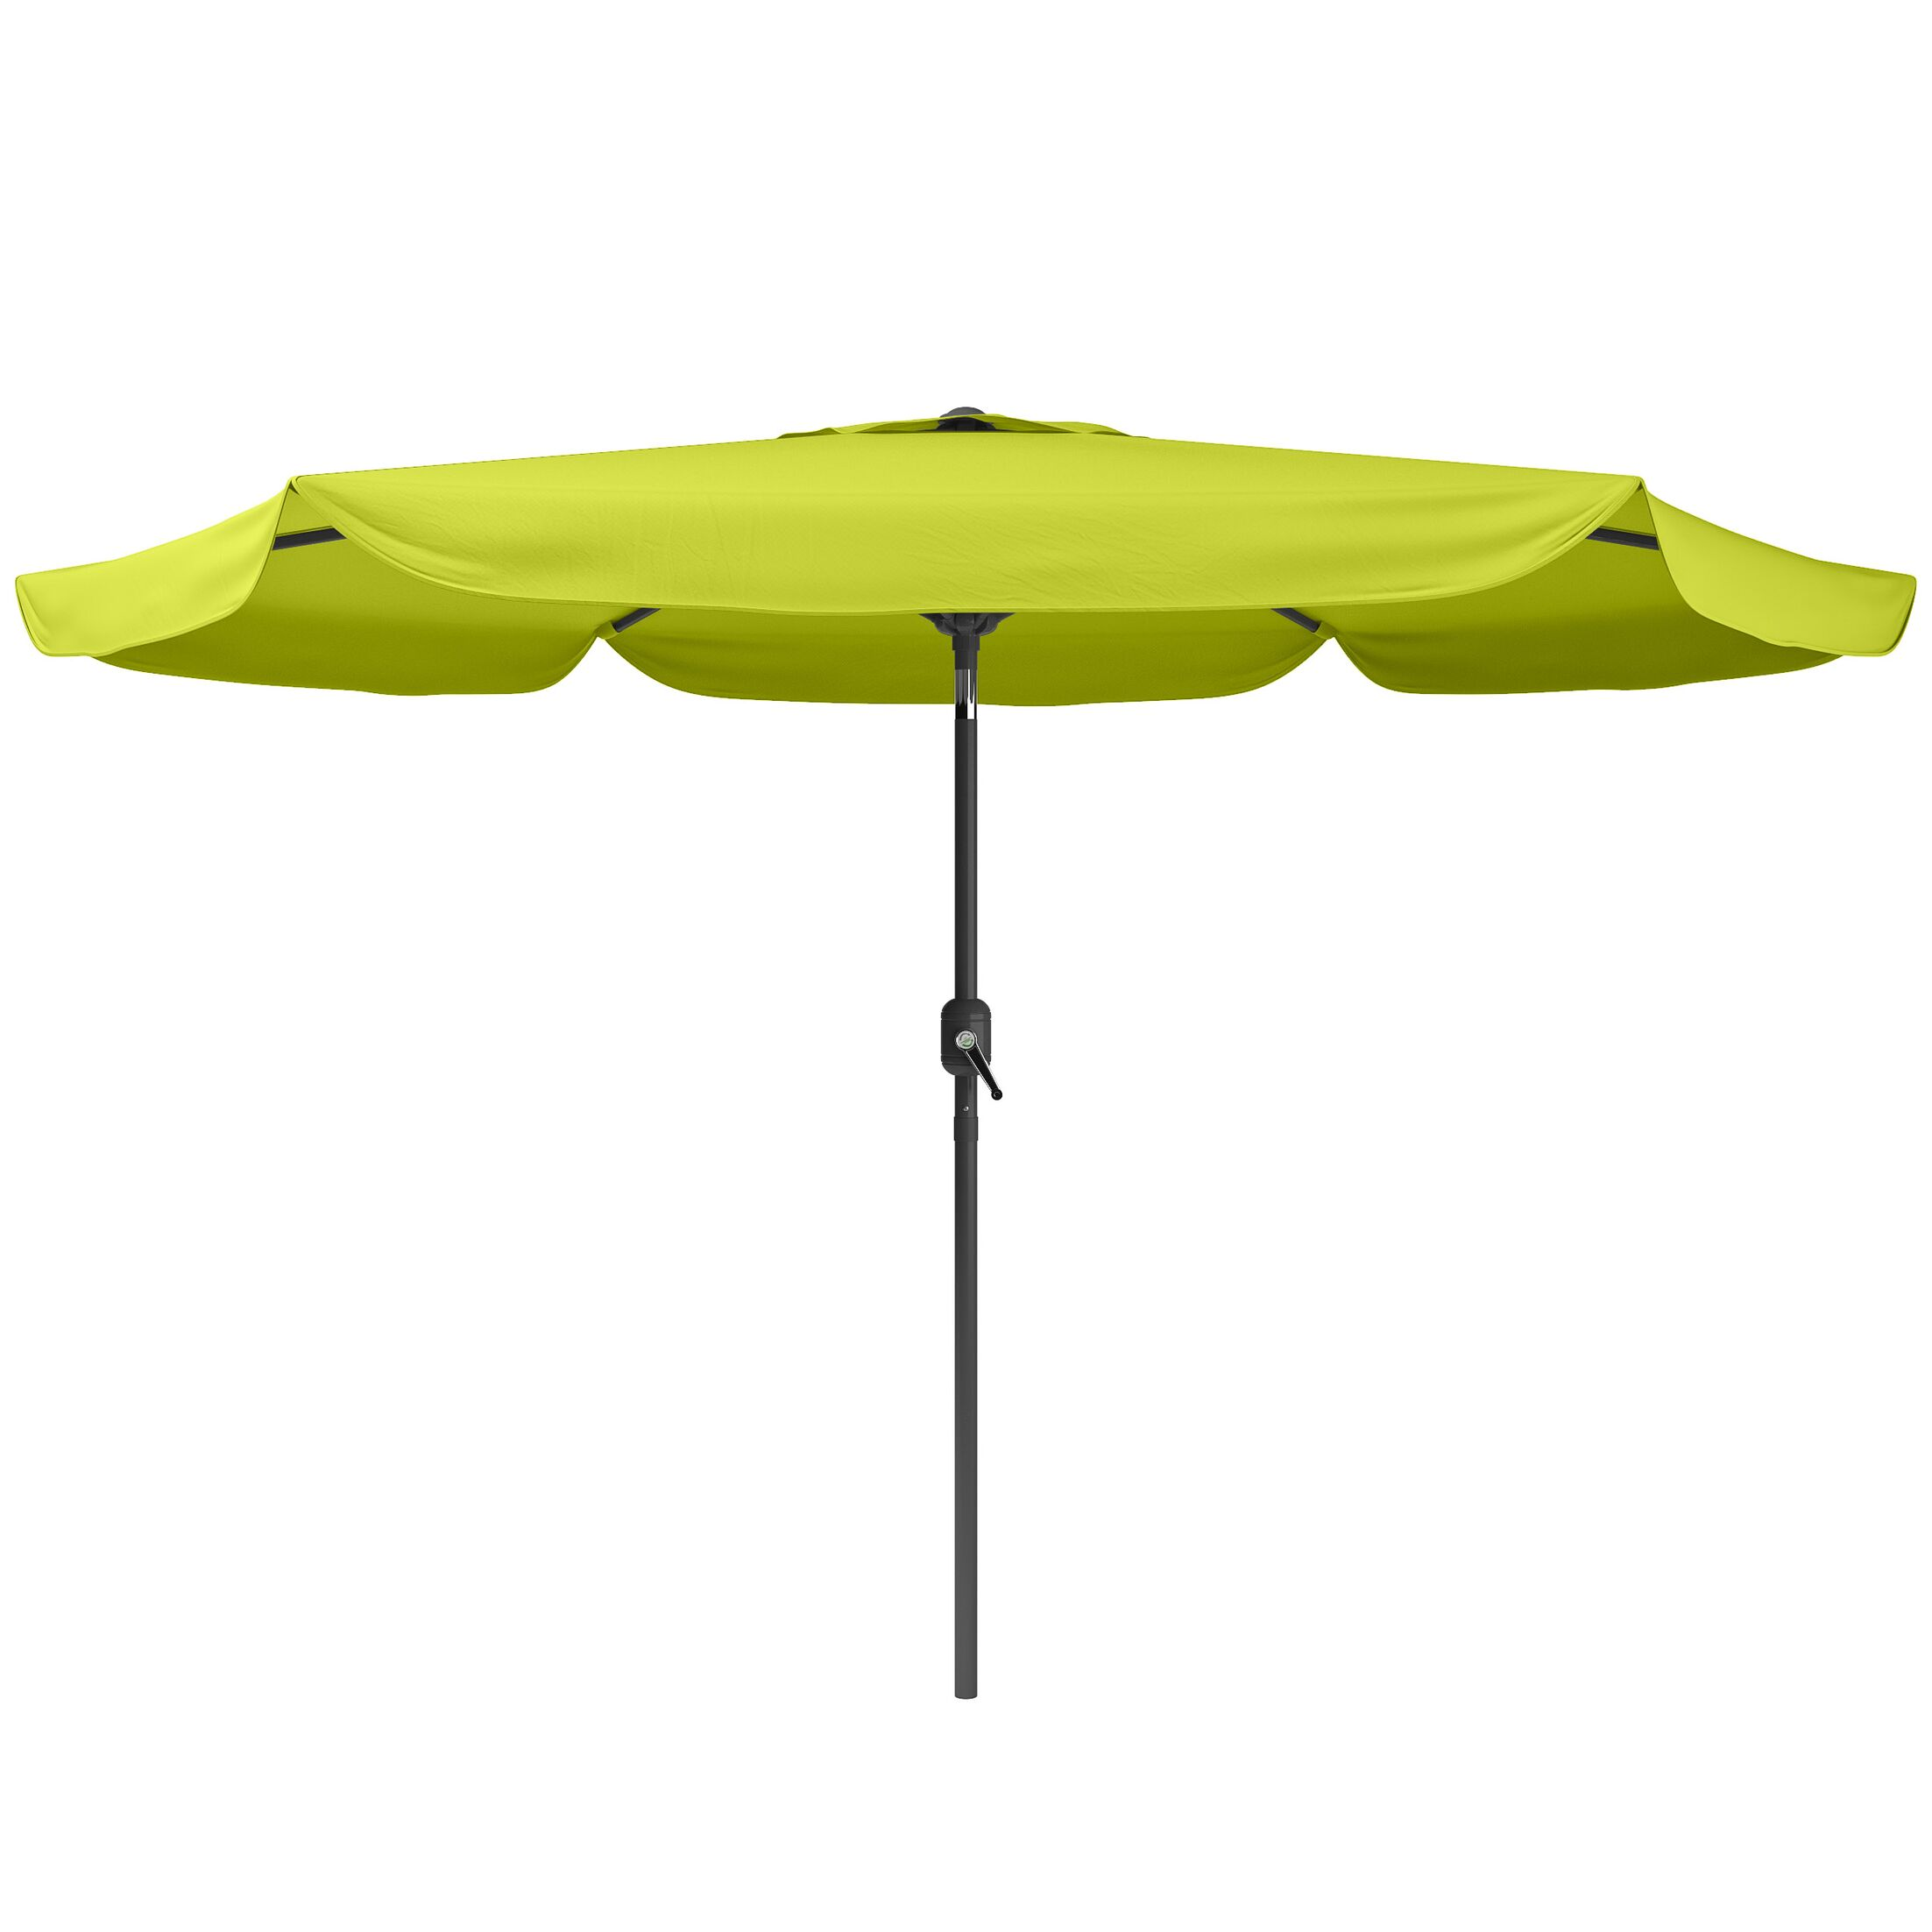 Corliving 10' Market Umbrella Fabric Color: Lime Green